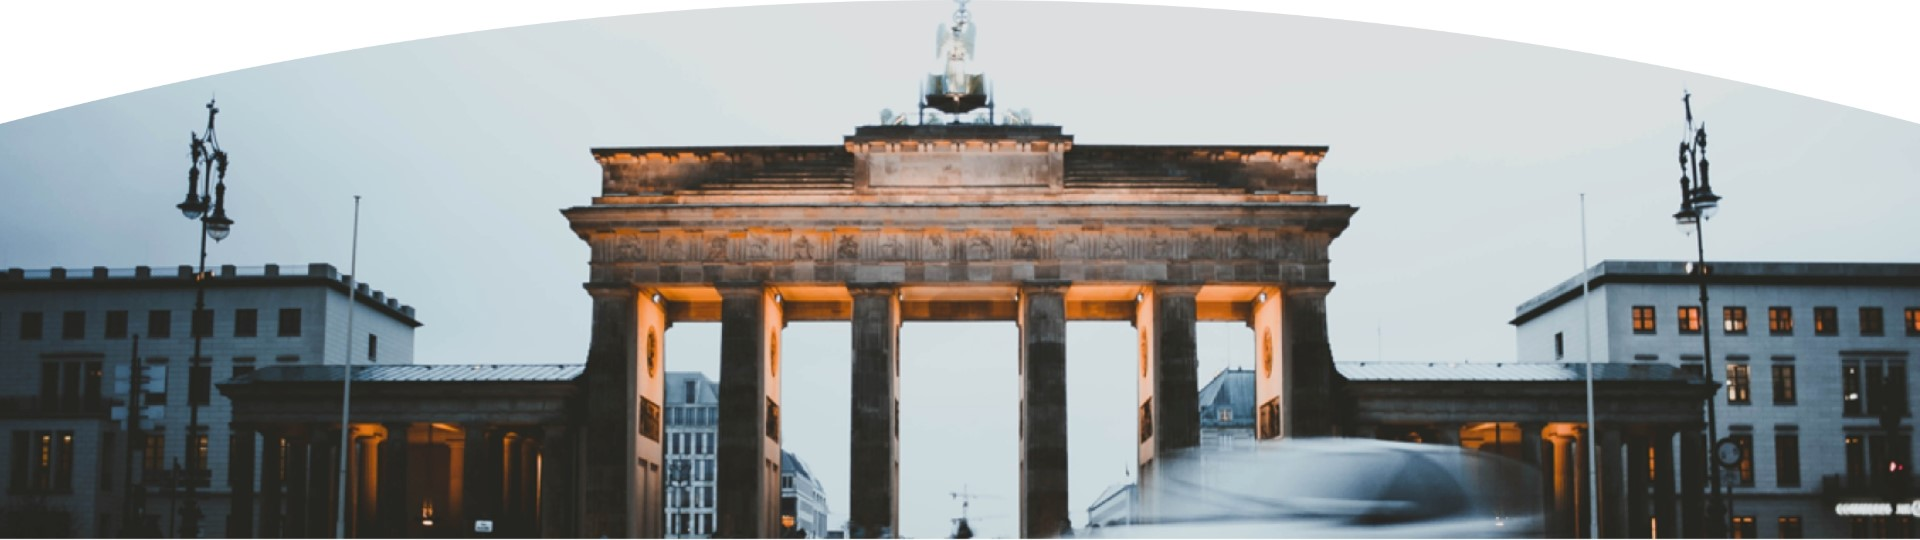 The Brandenburg gate seen at night in Berlin